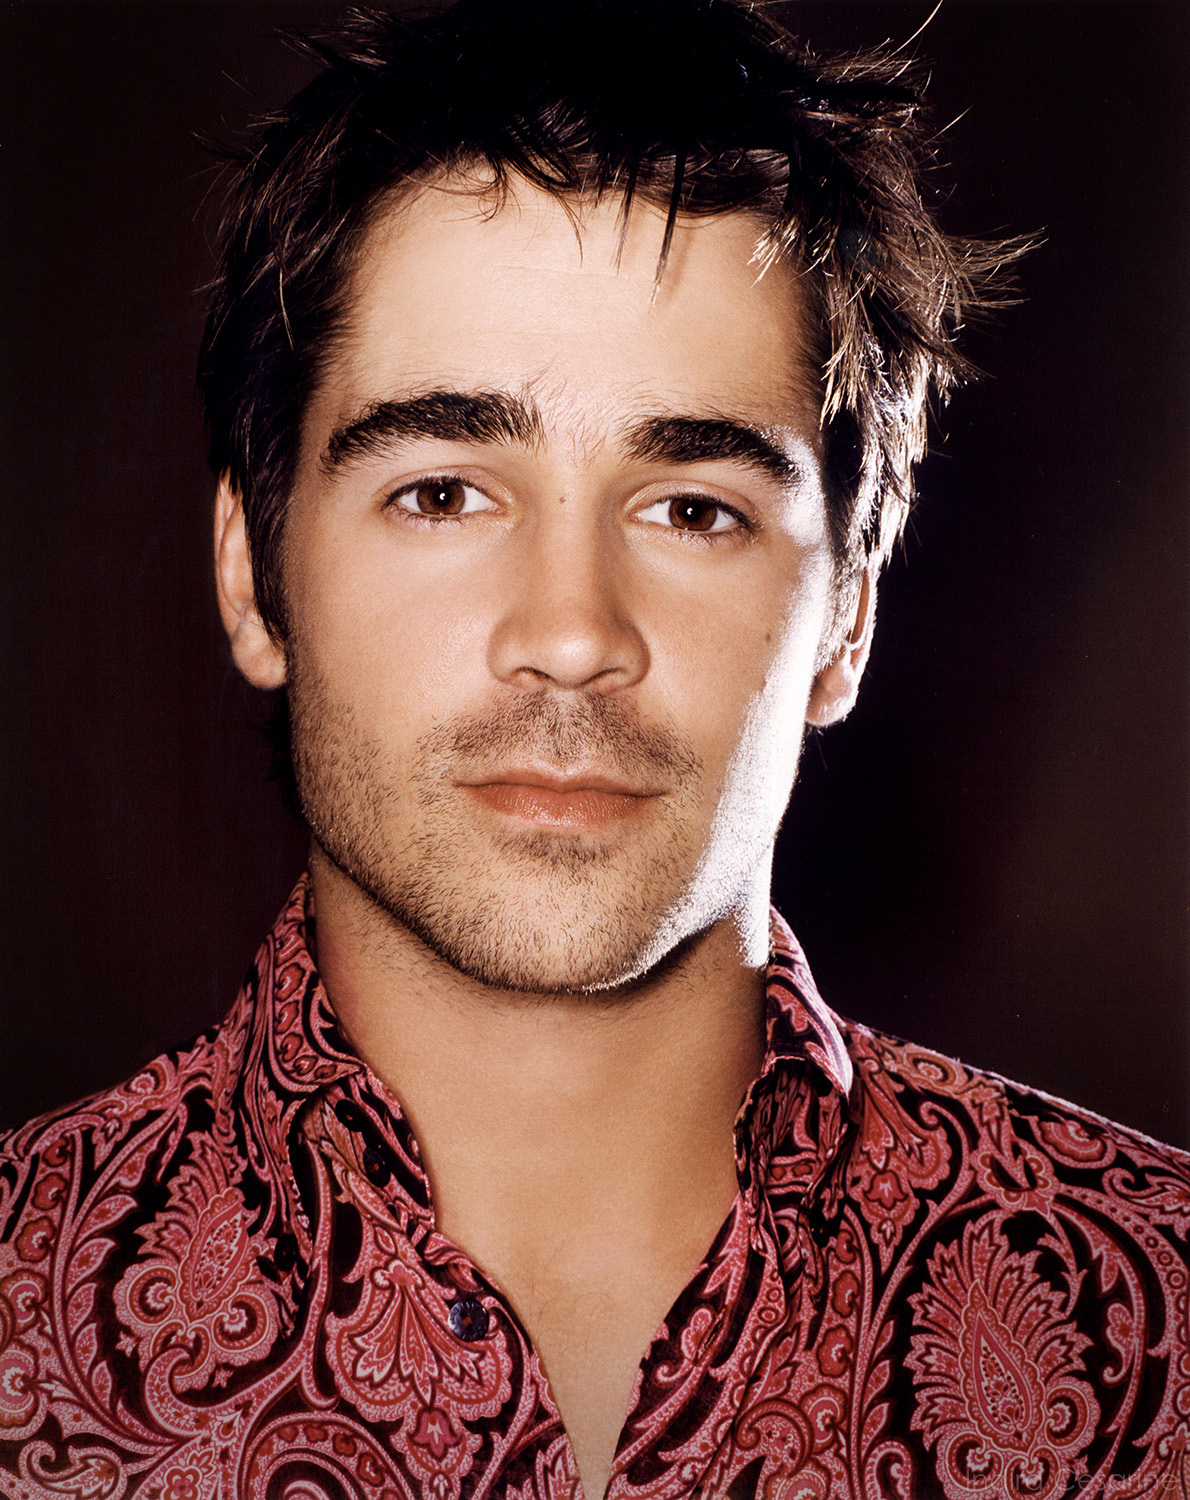 COLIN-FARRELL-Photography-by-Indira-Cesarine-003.jpg